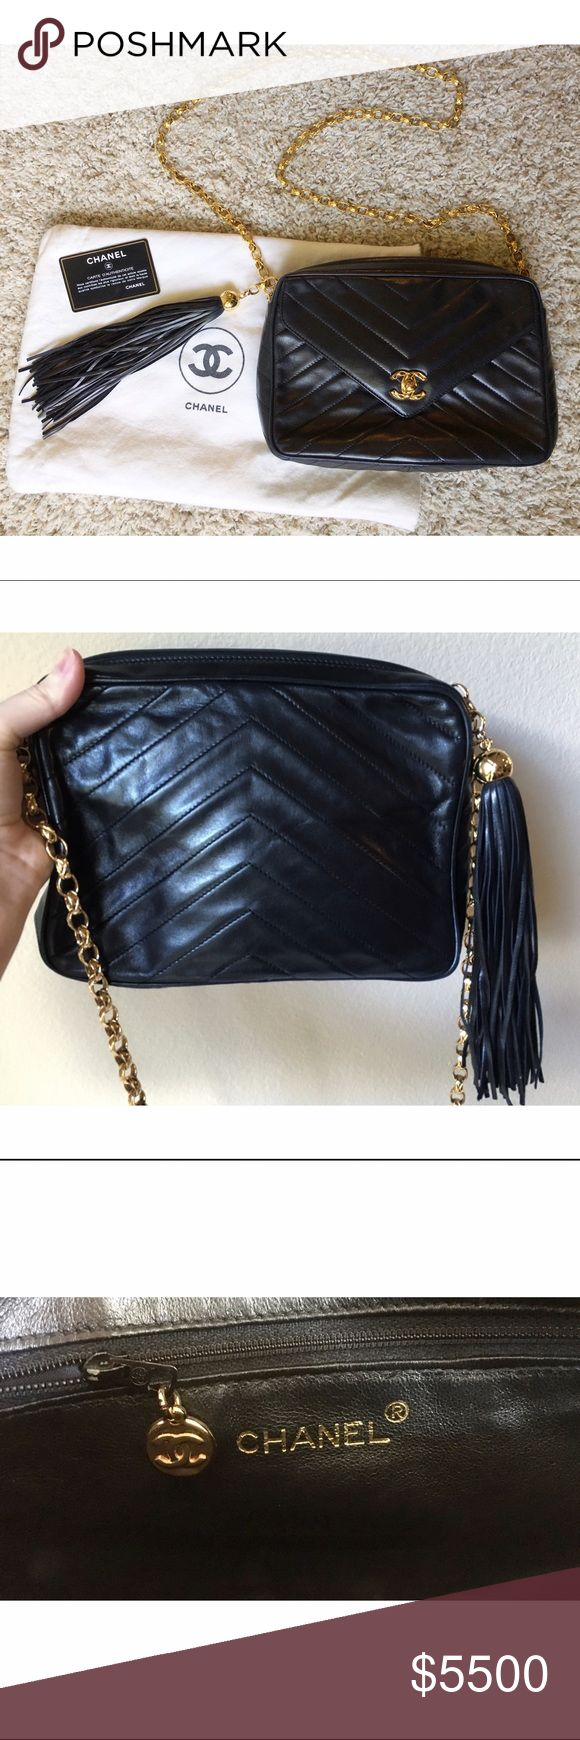 CHANEL Vintage Lambskin Tassel Chevron Purse This 100% authentic rare CHANEL vintage tassel crossbody purse was made in Italy from sturdy, super soft lambskin leather. This small, uniquely structured bag is beautifully crafted with unique chevron detailing and embroidery. Luxurious gold zippers, a removable chain strap, and CHANEL hardware make this purse one of a kind. This purse is timeless, elegant, authentic, and chic. Comes with CHANEL dust bag and authentic CHANEL certification card…